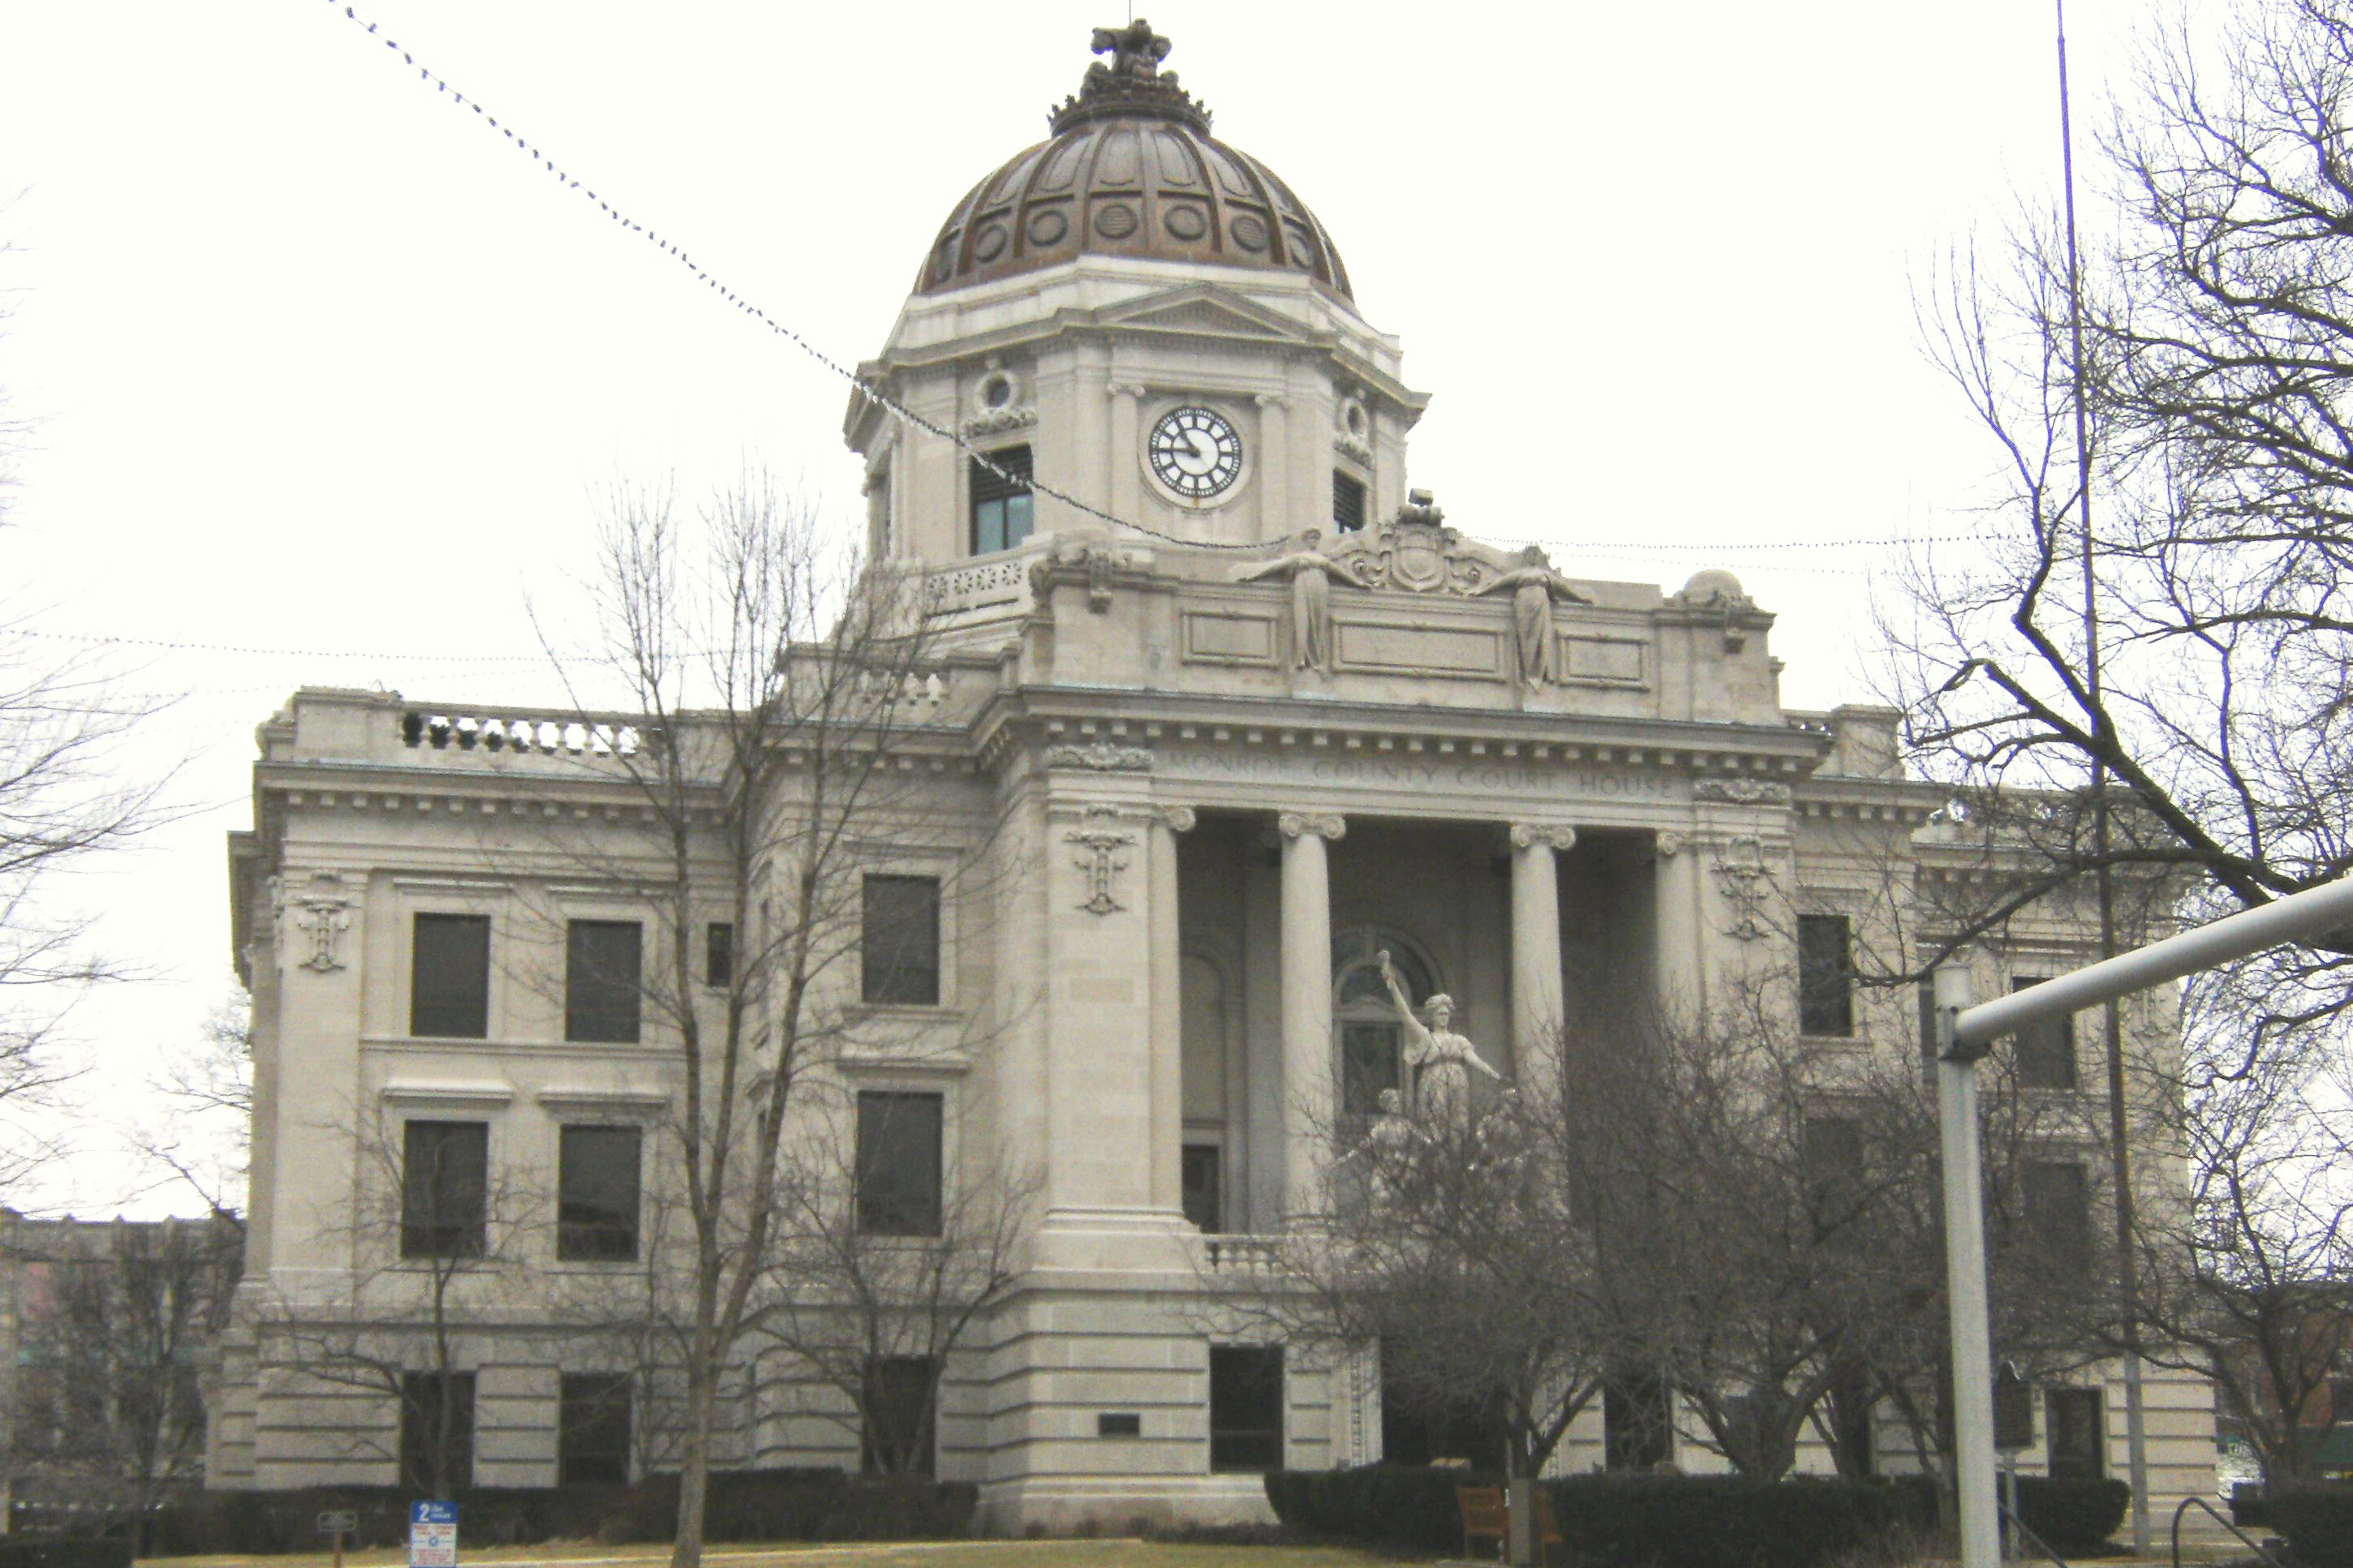 The Bloomington City Council read for the first time Wednesday a proposed ordinance that would establish a historic district downtown.